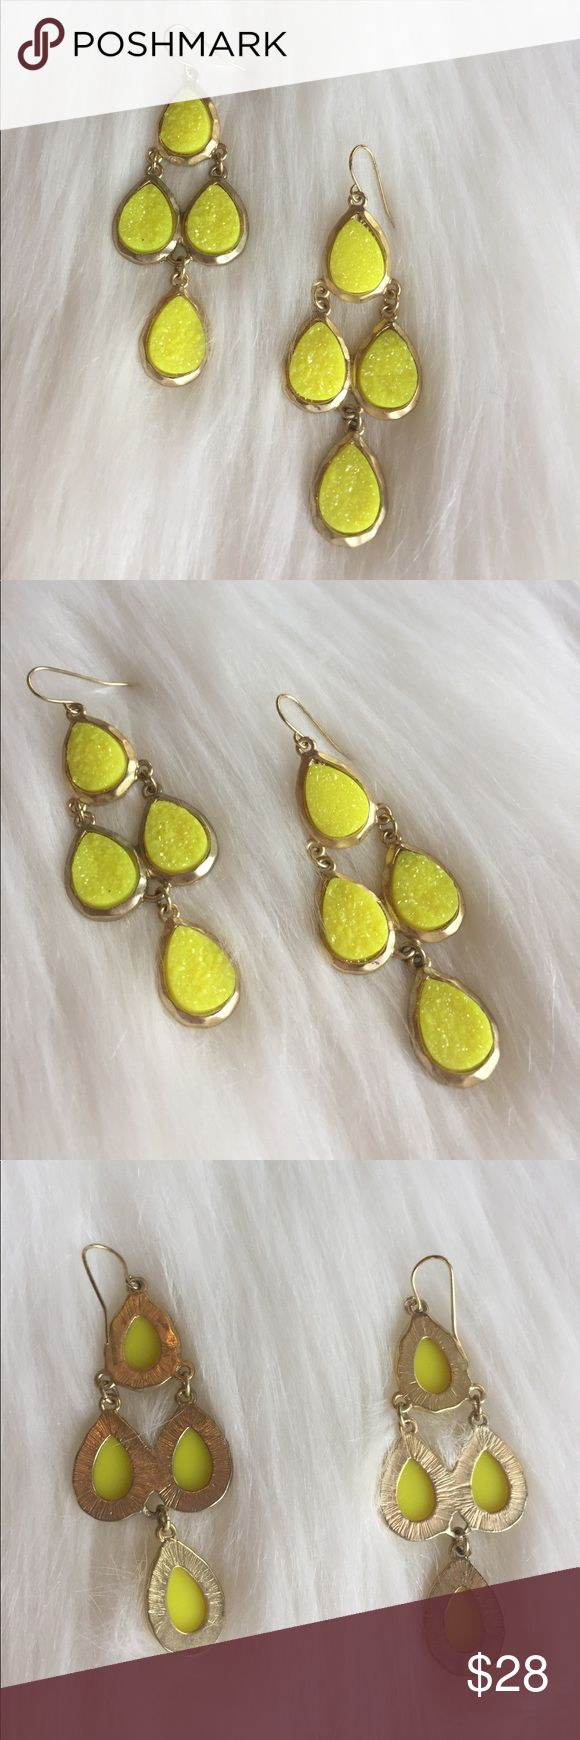 "Stella & Dot Bright Yellow Chandelier Earrings Stunning Stella & Dot Bright Yellow & Gold Chandelier Earrings that have a Druzy sparkle look! A perfect statement earring! 3"" in length. Some of the gold has discoloration. Please see photos. MW508062917 Stella & Dot Jewelry Earrings"